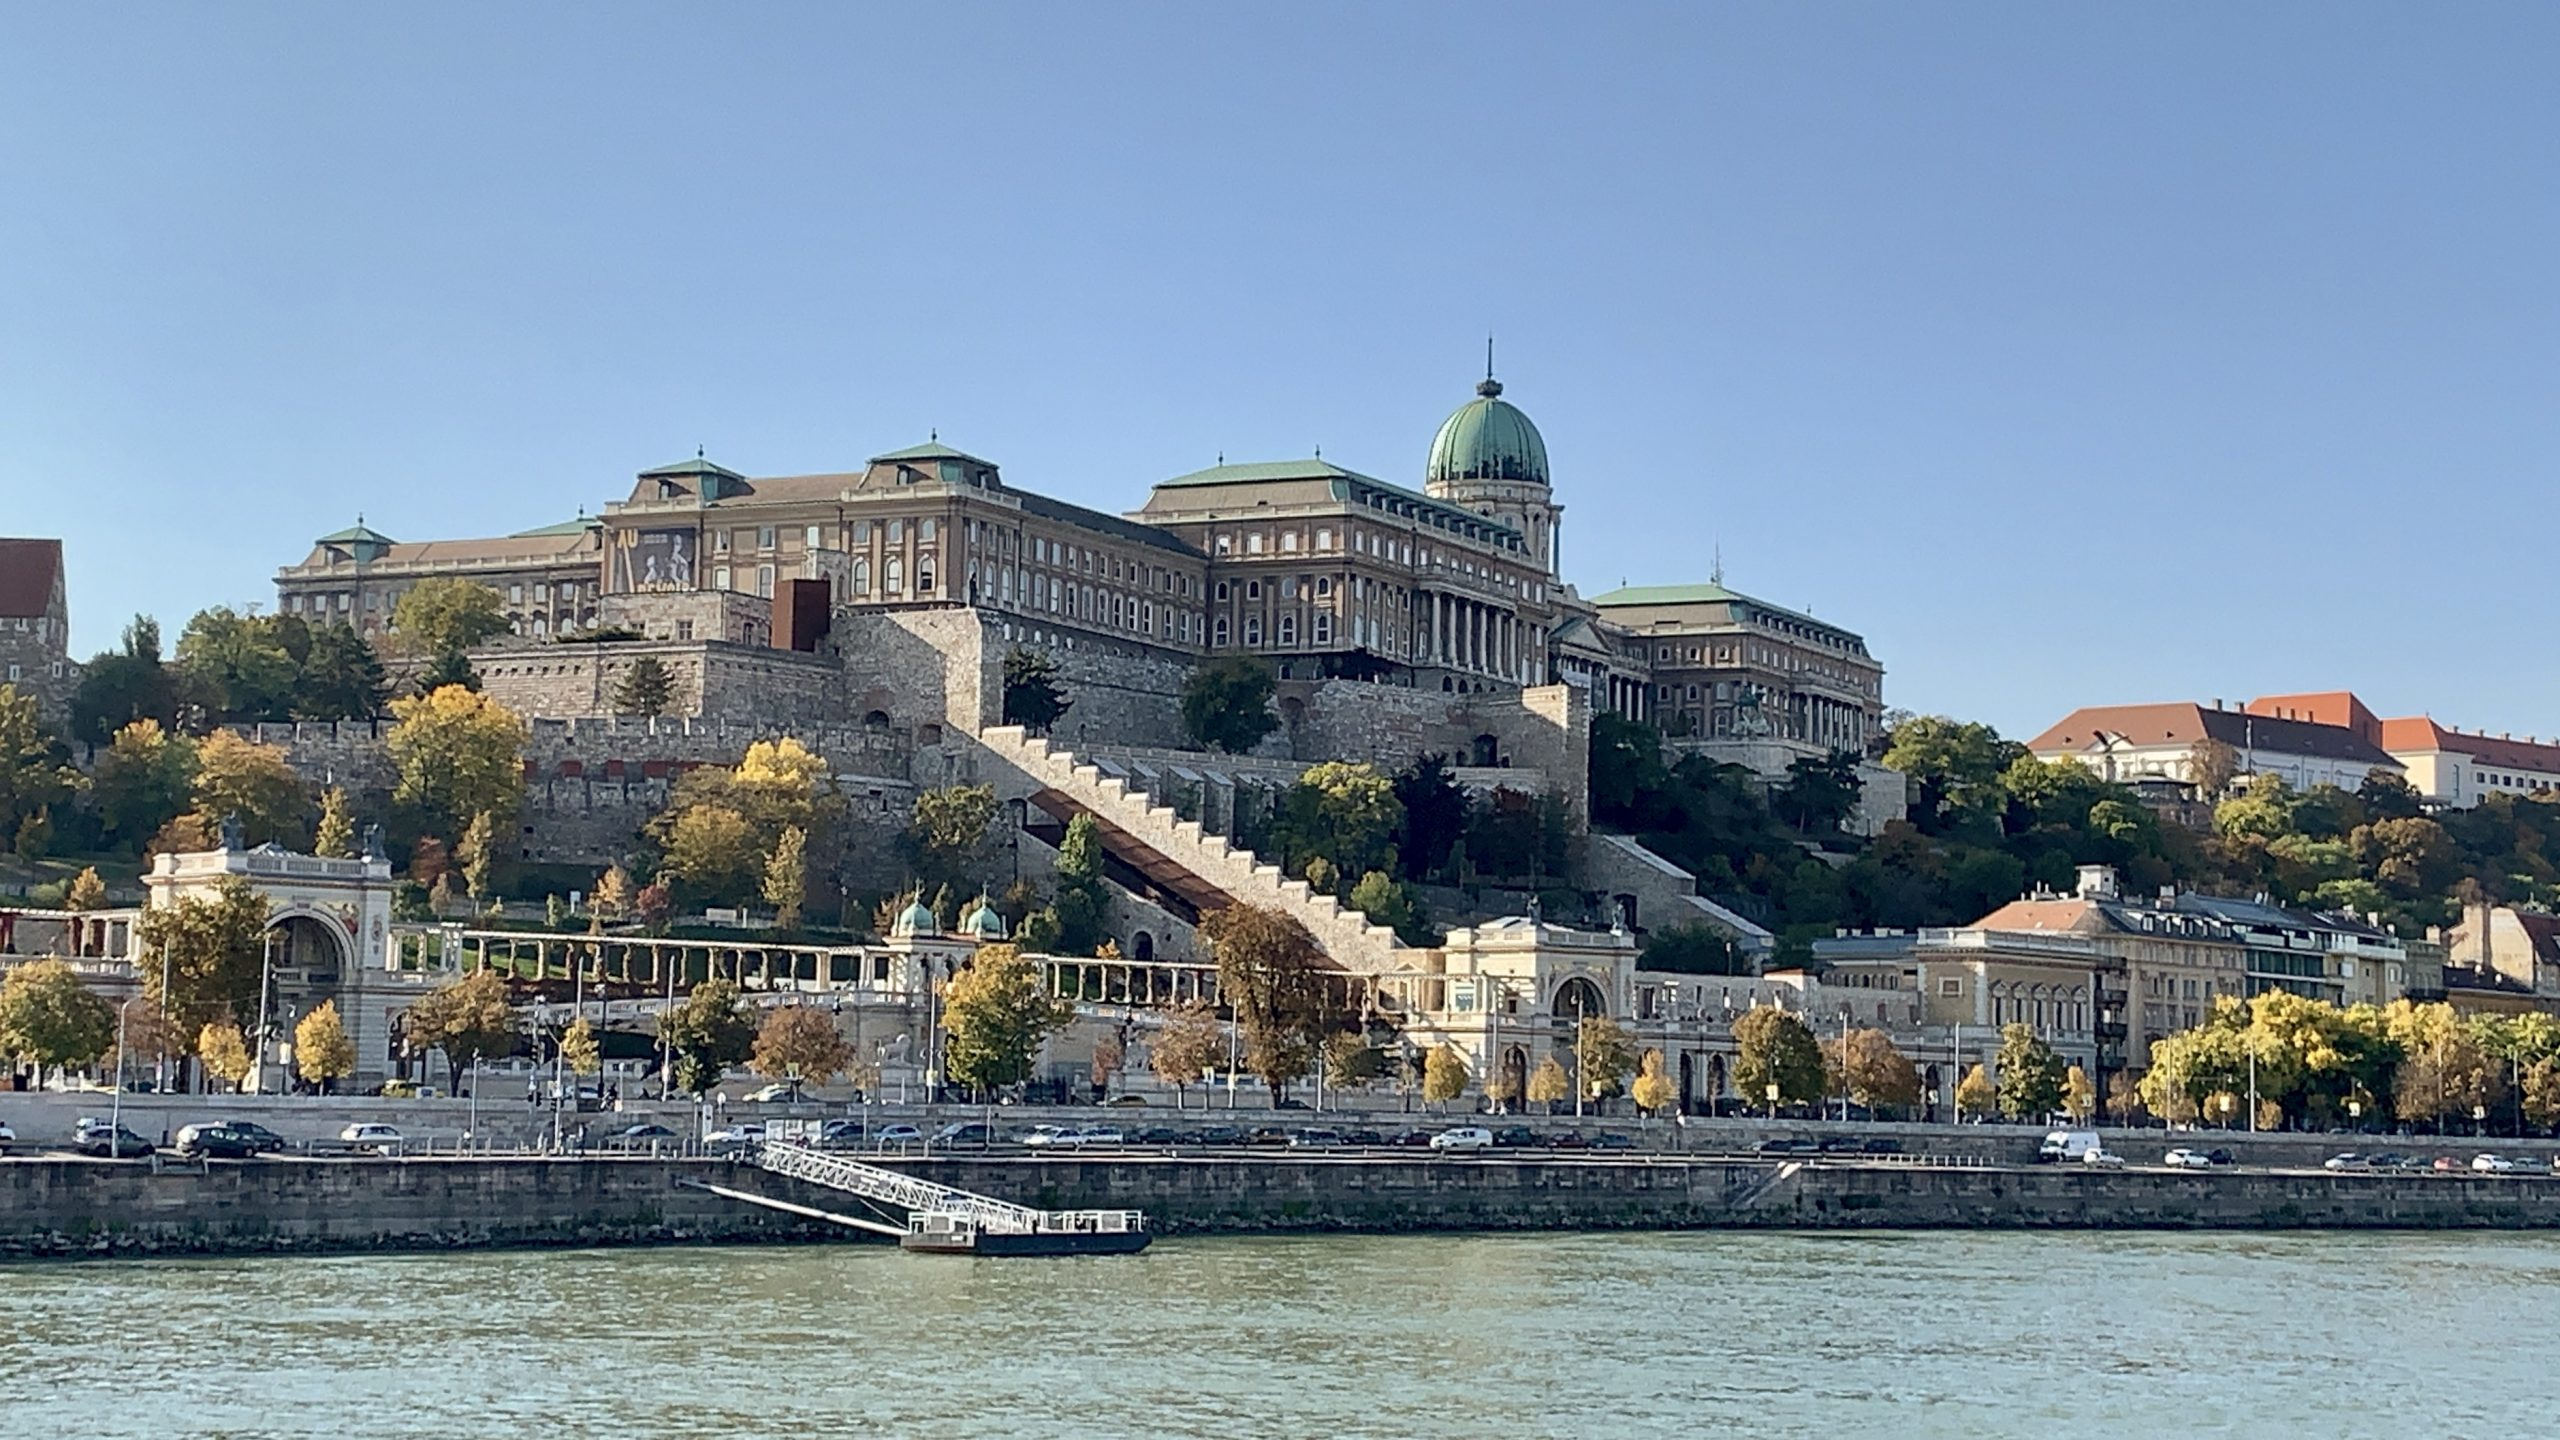 Budapest cruising the danube river